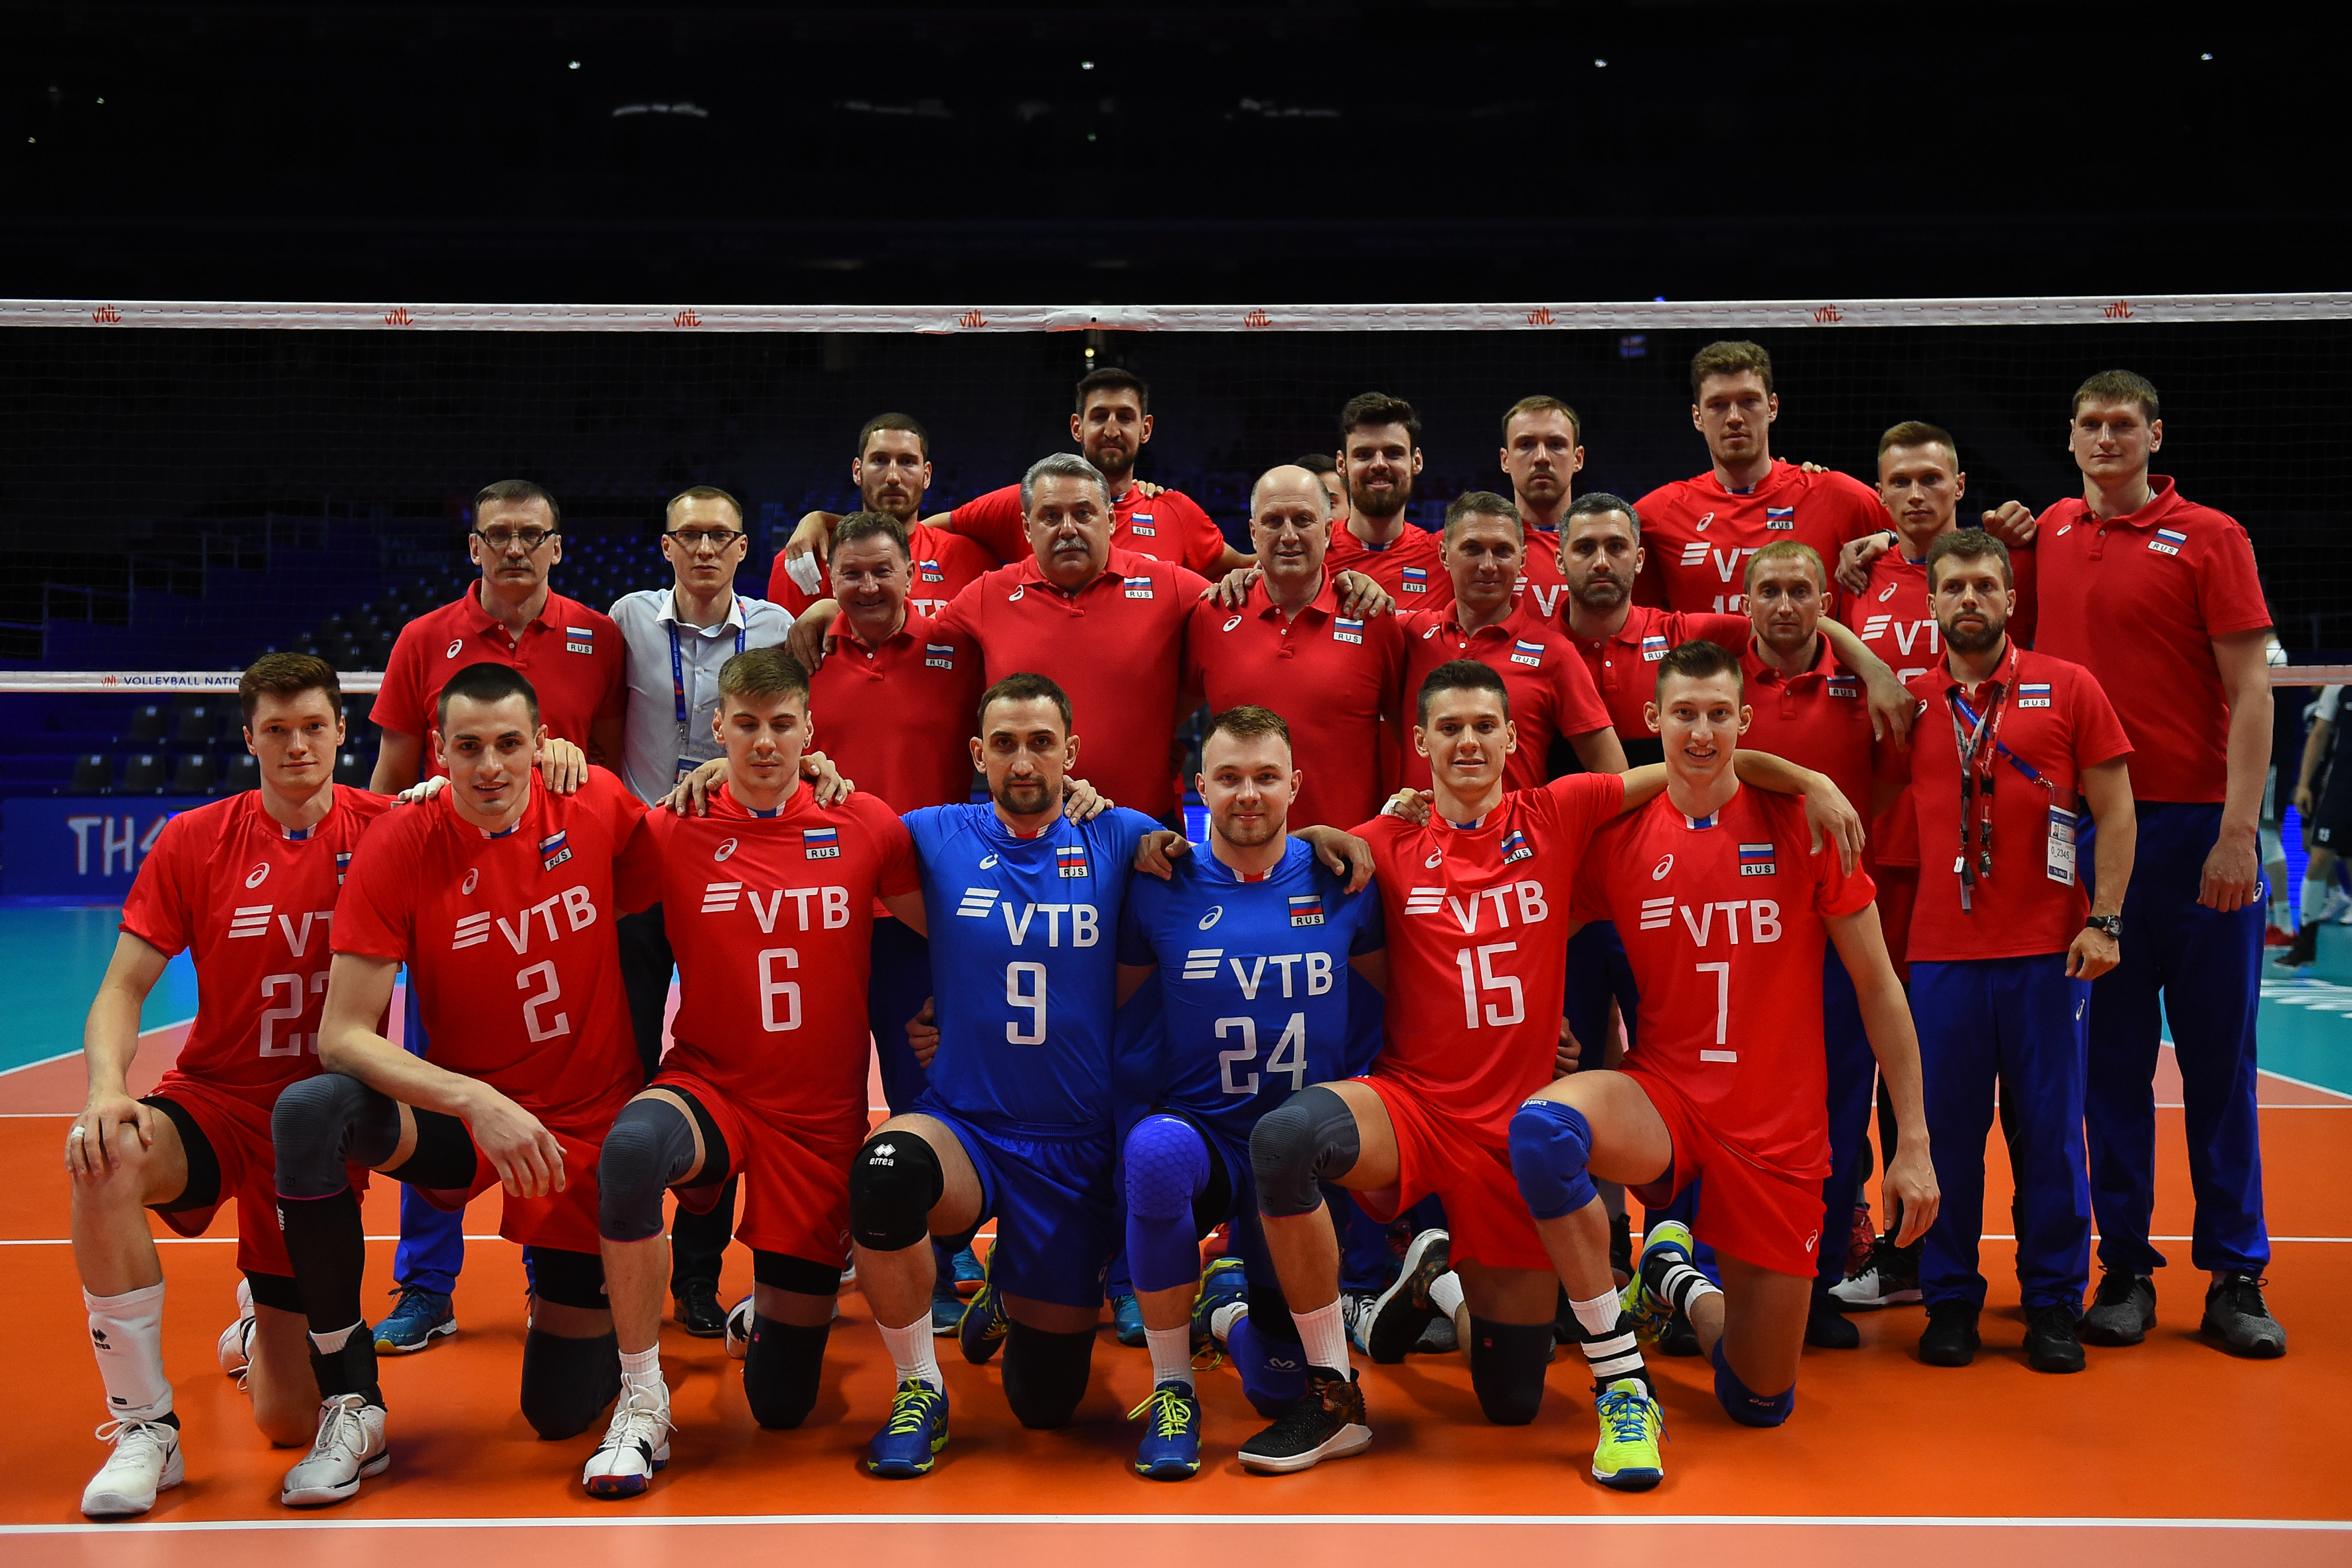 Overview Russia Fivb Volleyball Men S World Championship Italy And Bulgaria 2018